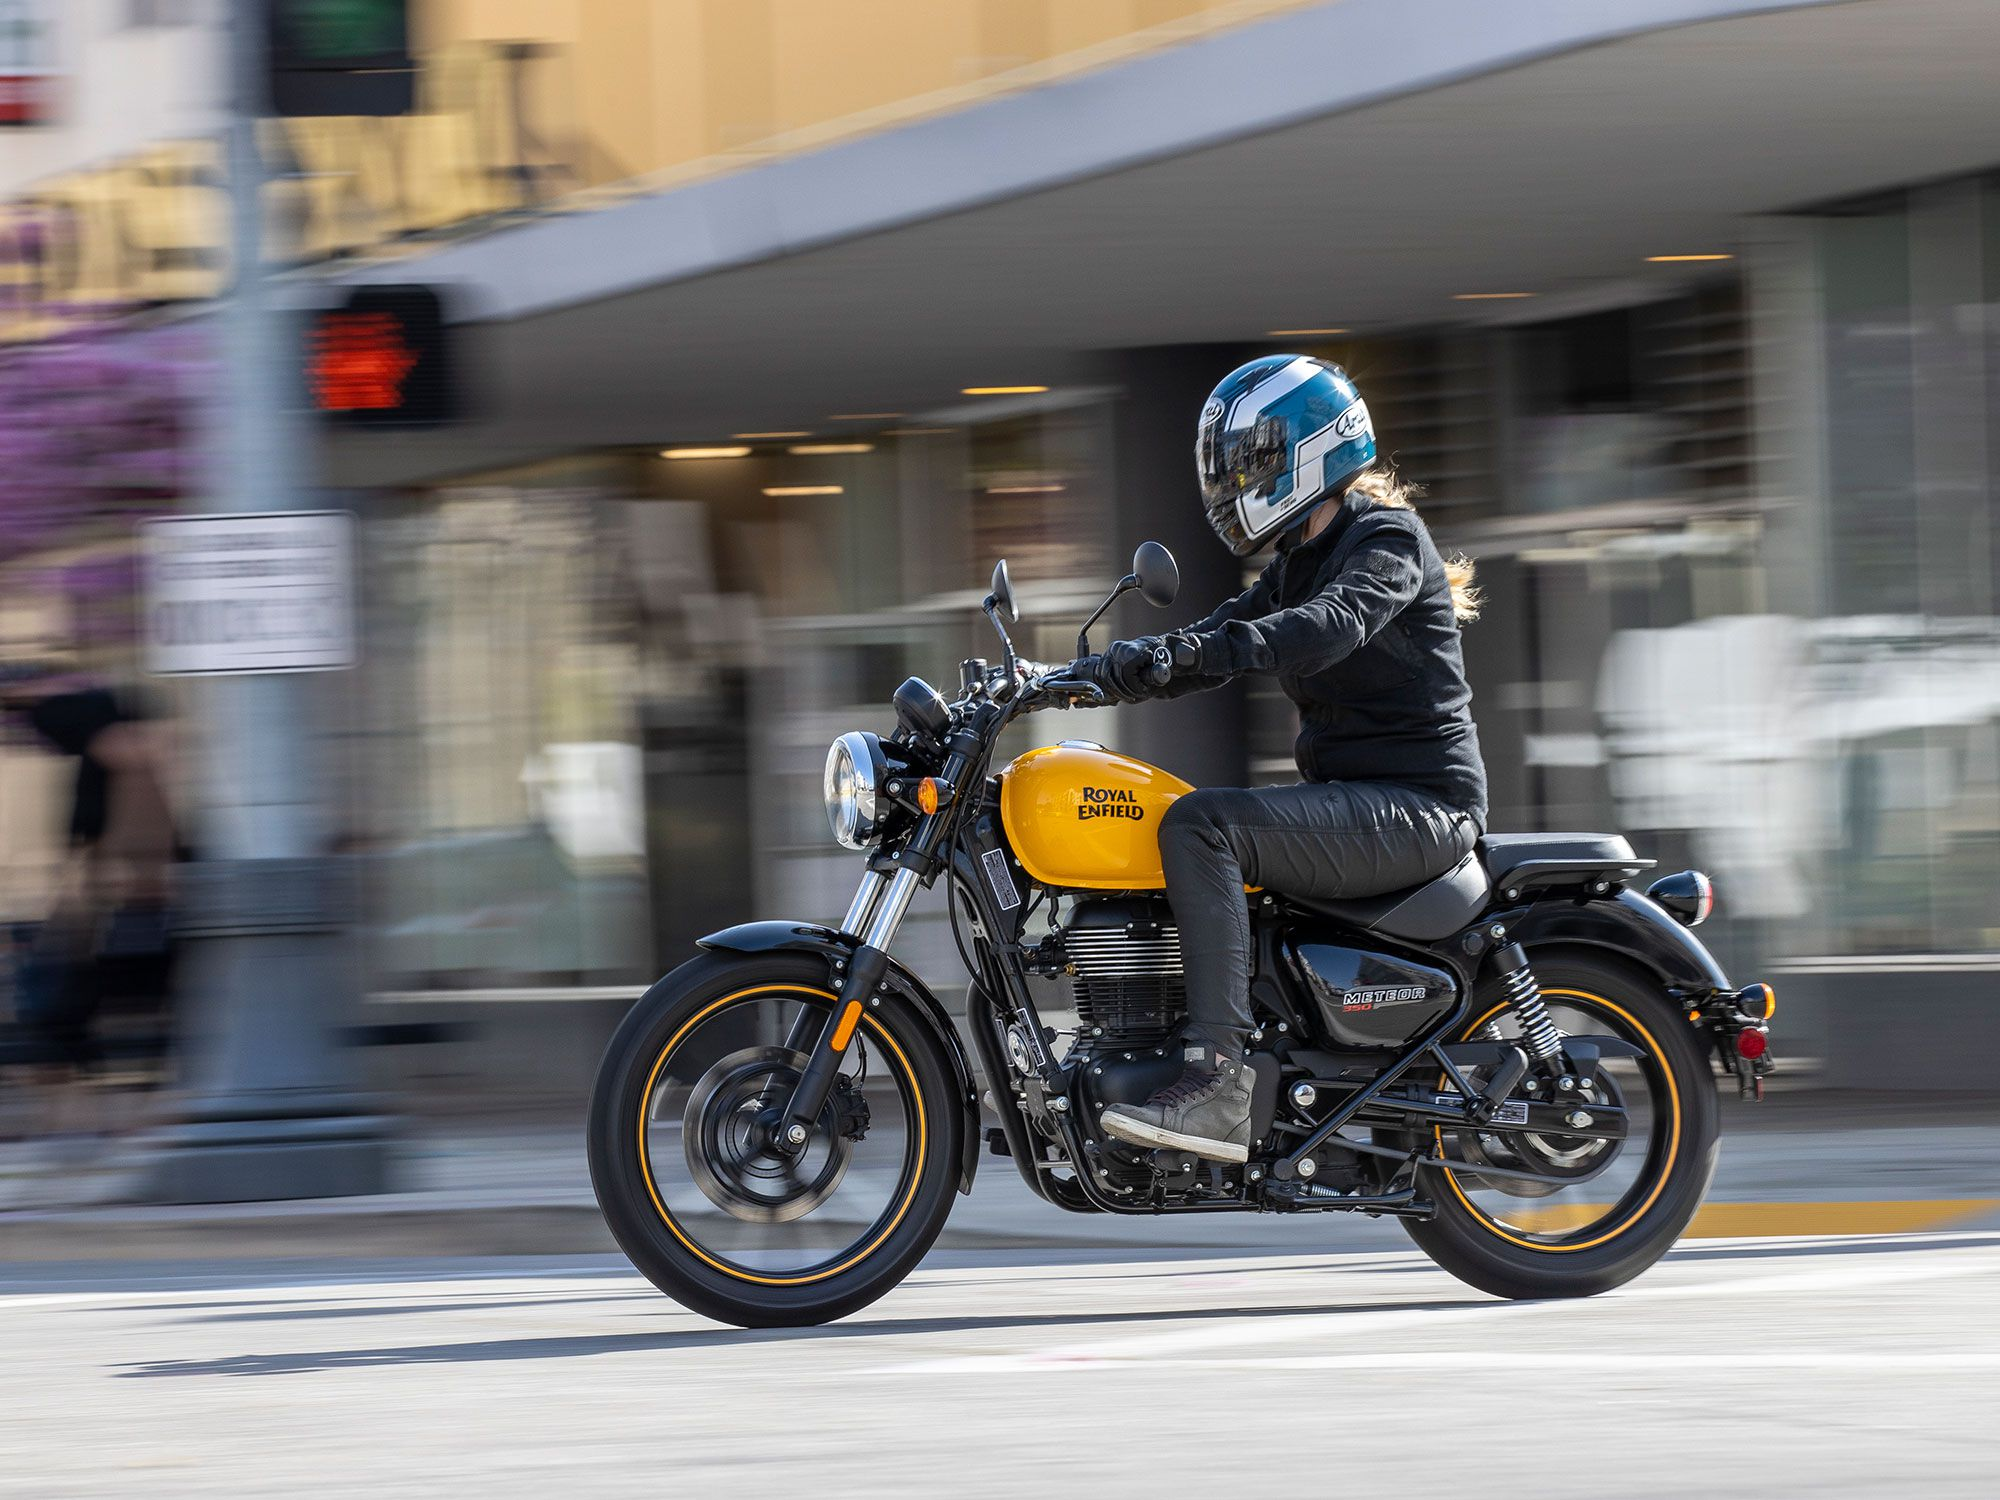 There's a new beginner-oriented cruiser in town. The Royal Enfield Meteor 350.